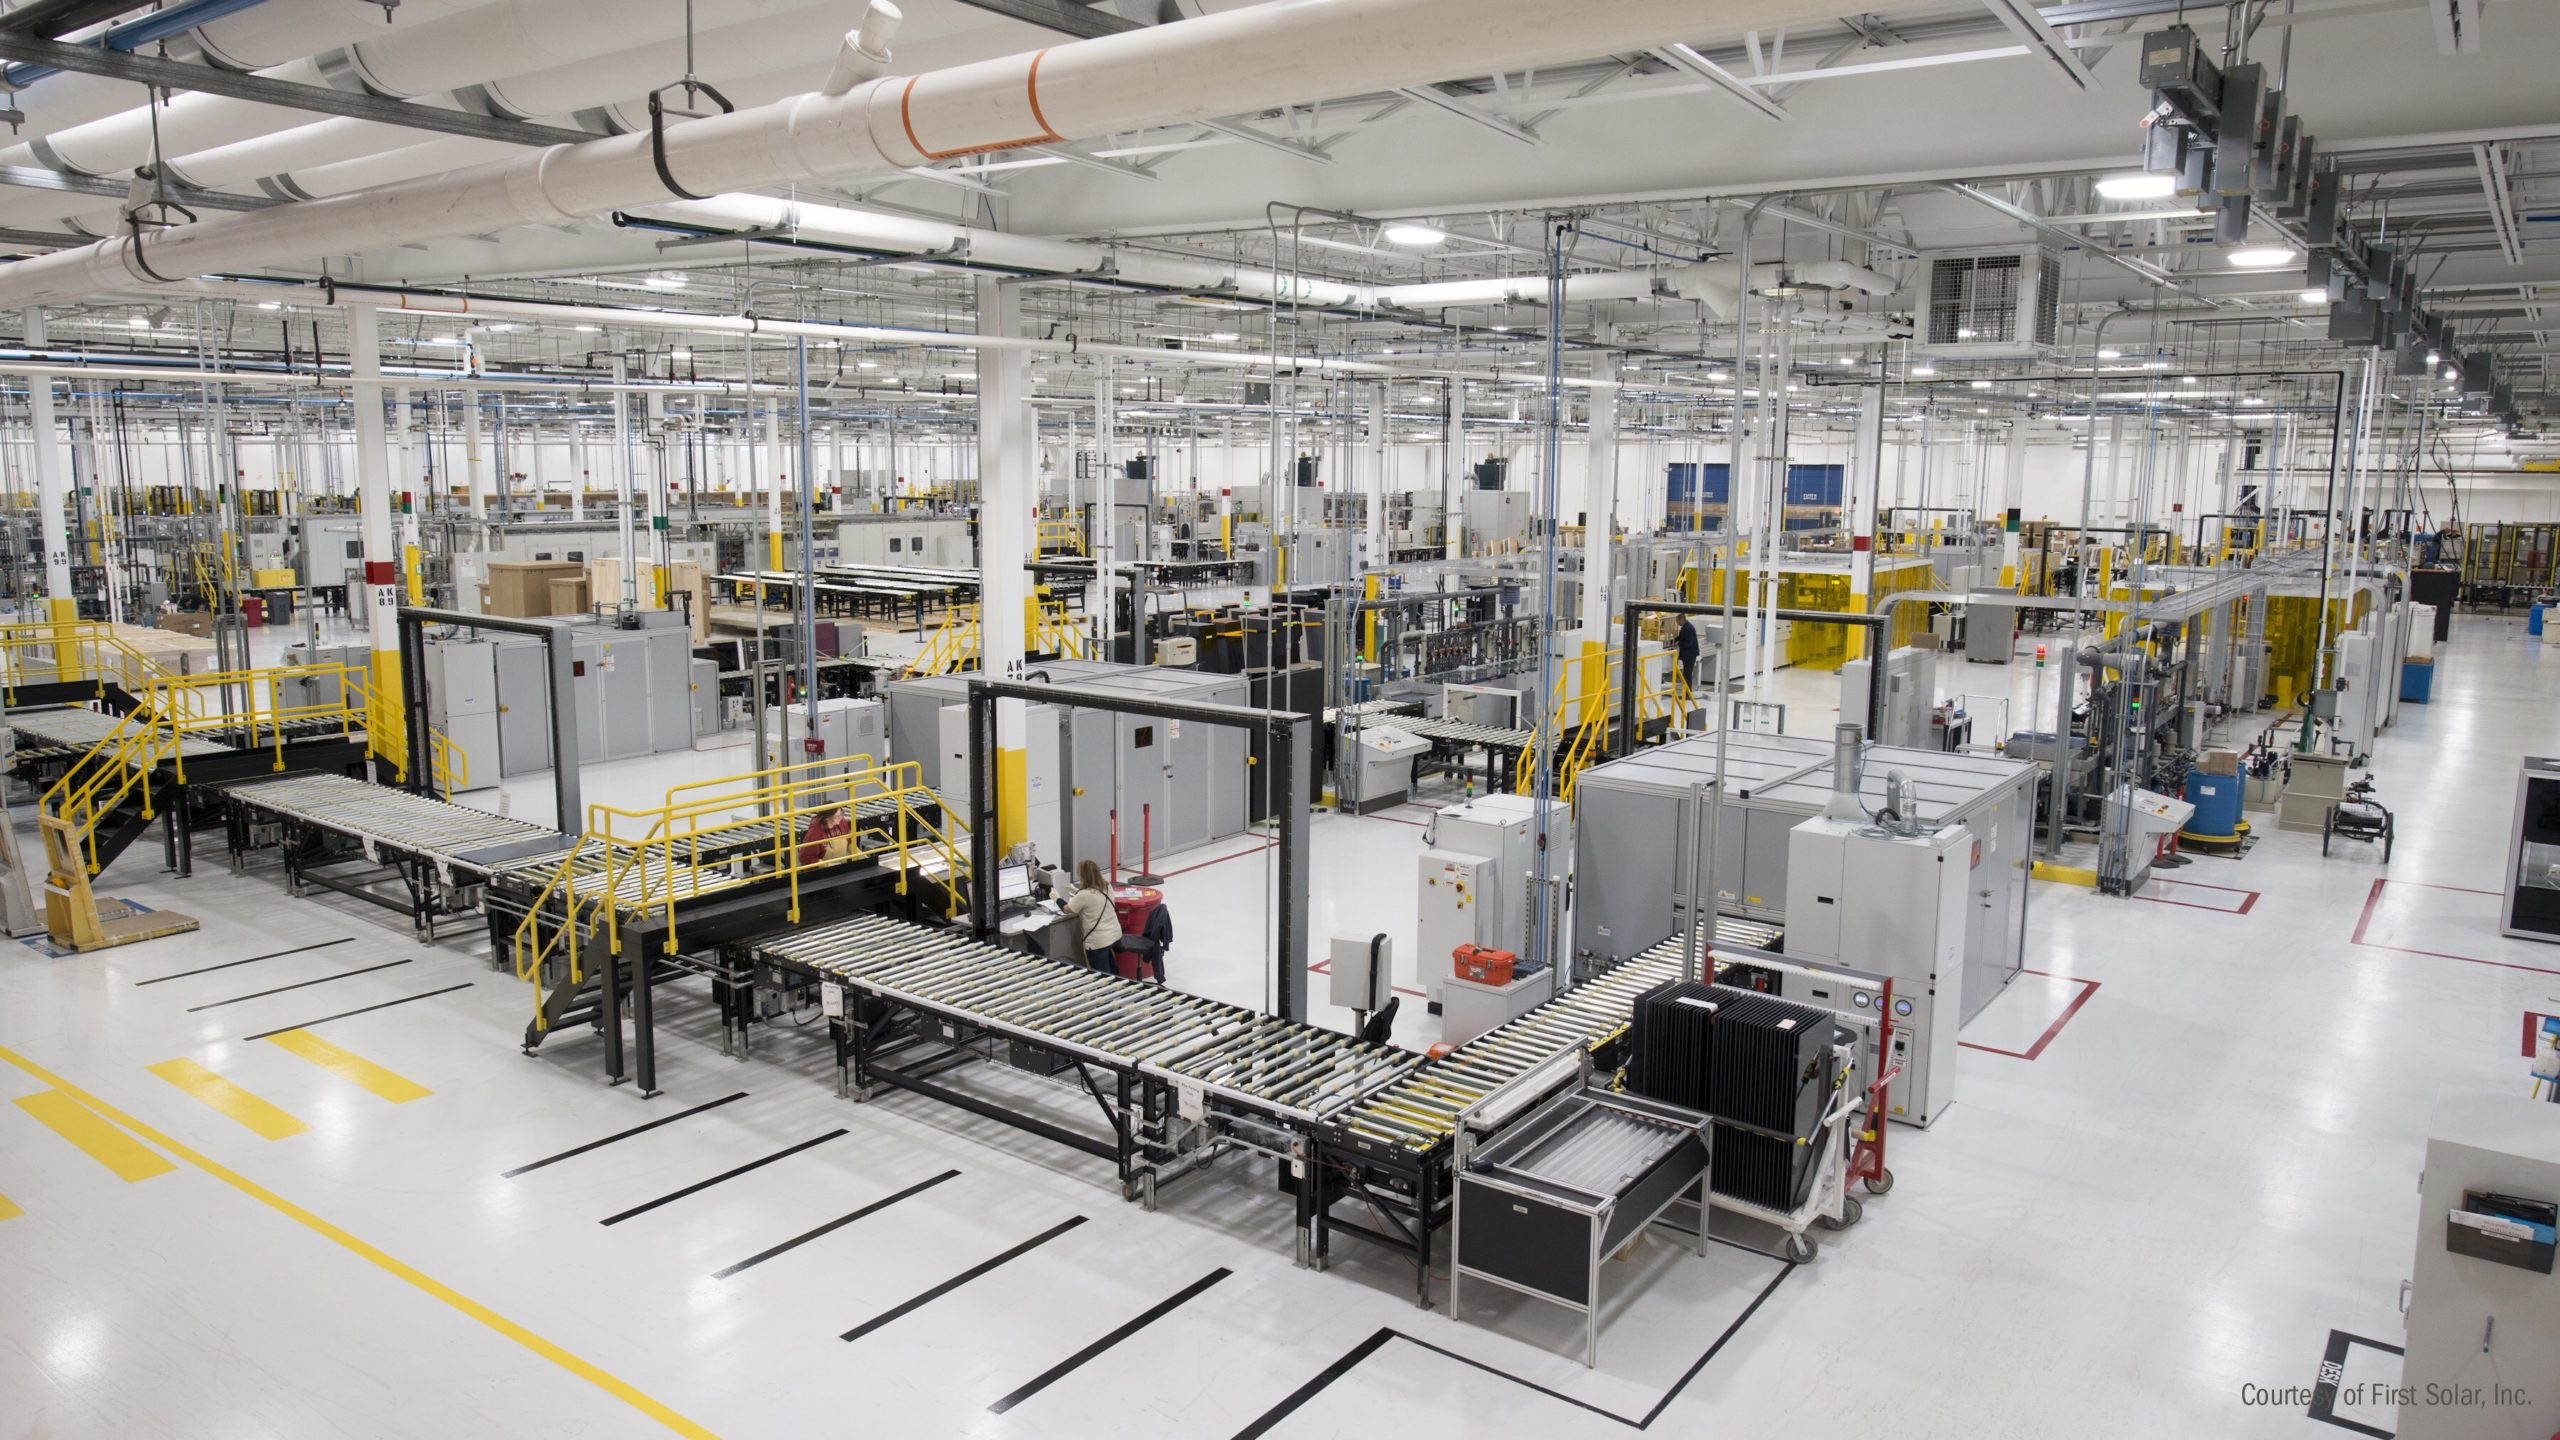 First Solar management highlighted that a decision to restart 2 idled production lines in Perrysburg, due to increased demand for its modules, would result in shipments of around 3.1GW, up from previous guidance of 2.7GW to 2.8GW. Image@ First Solar